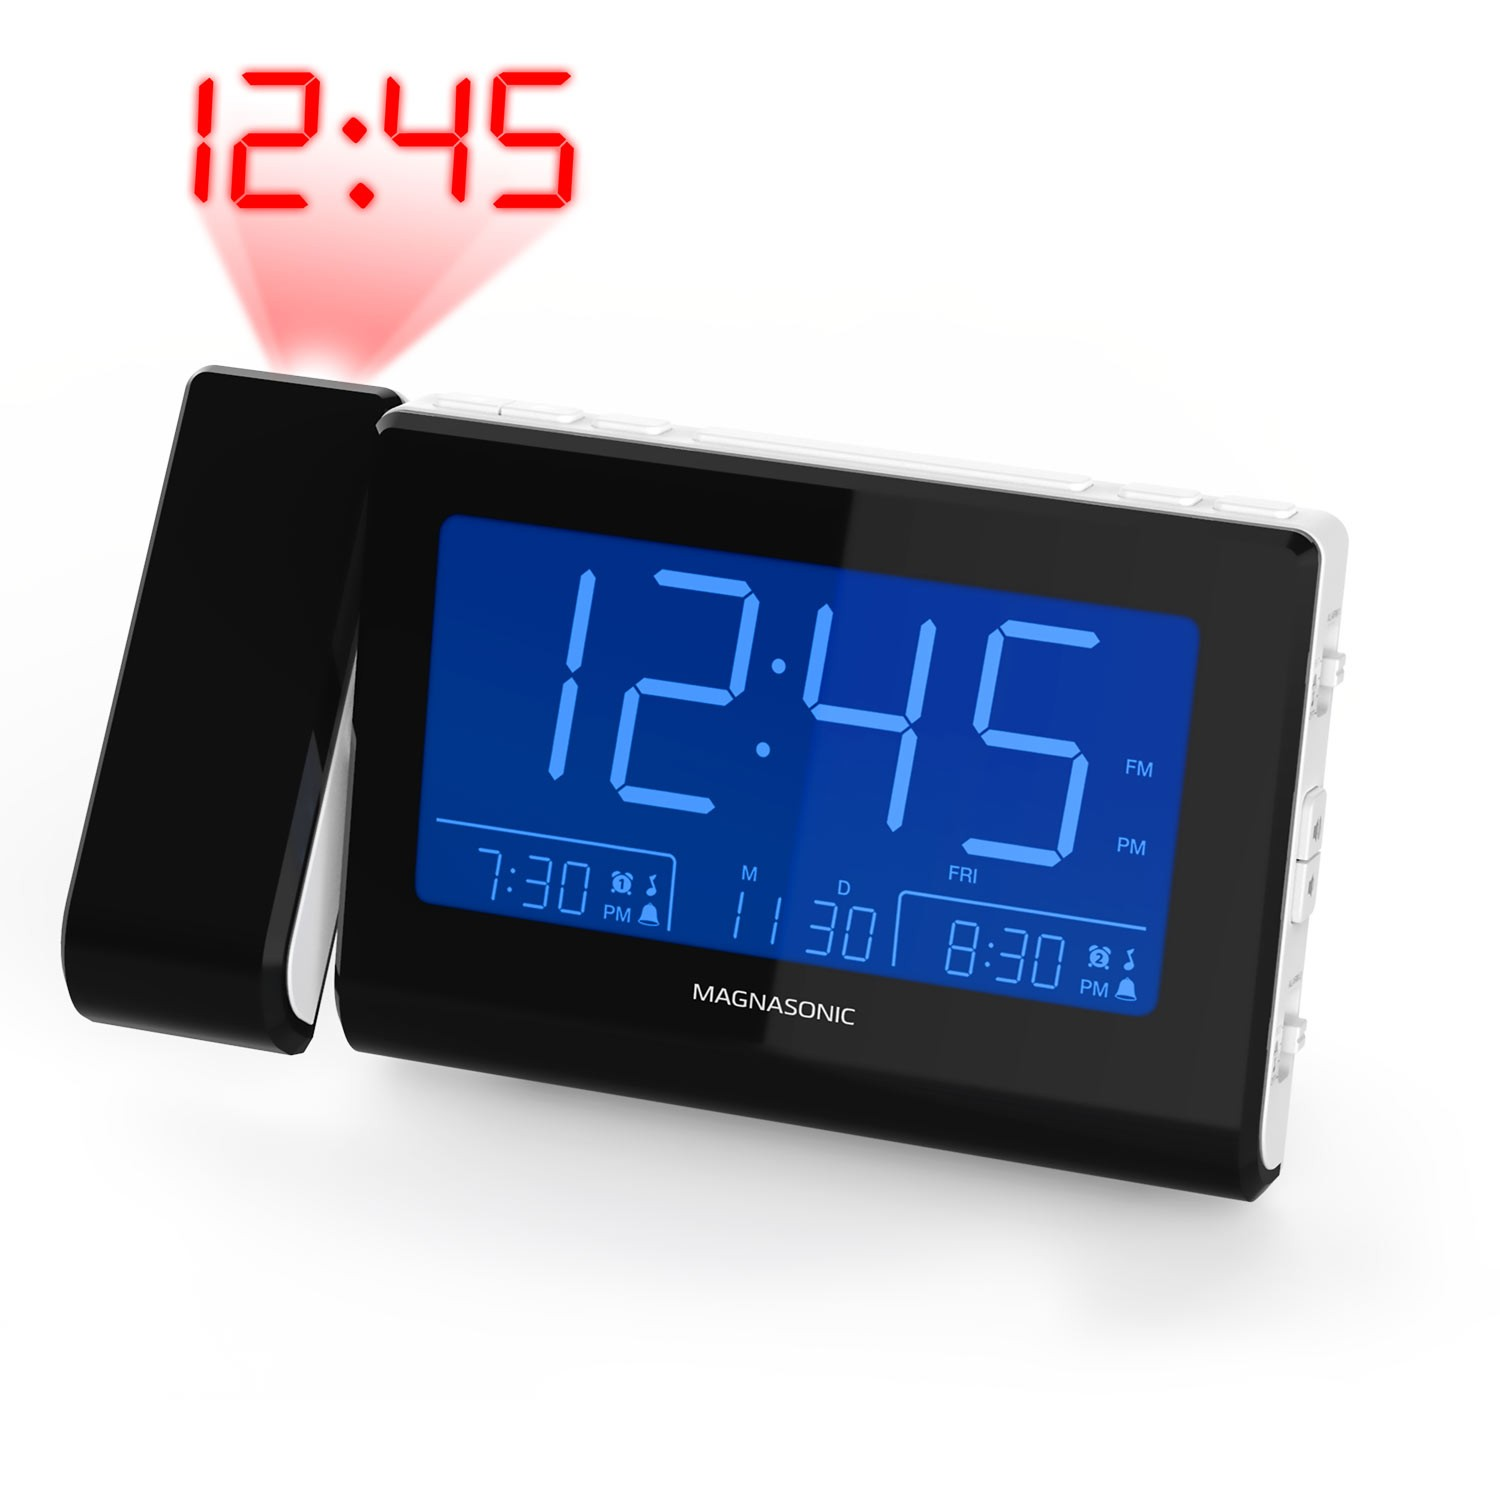 Alarm Clock Radio with Time Projection - White